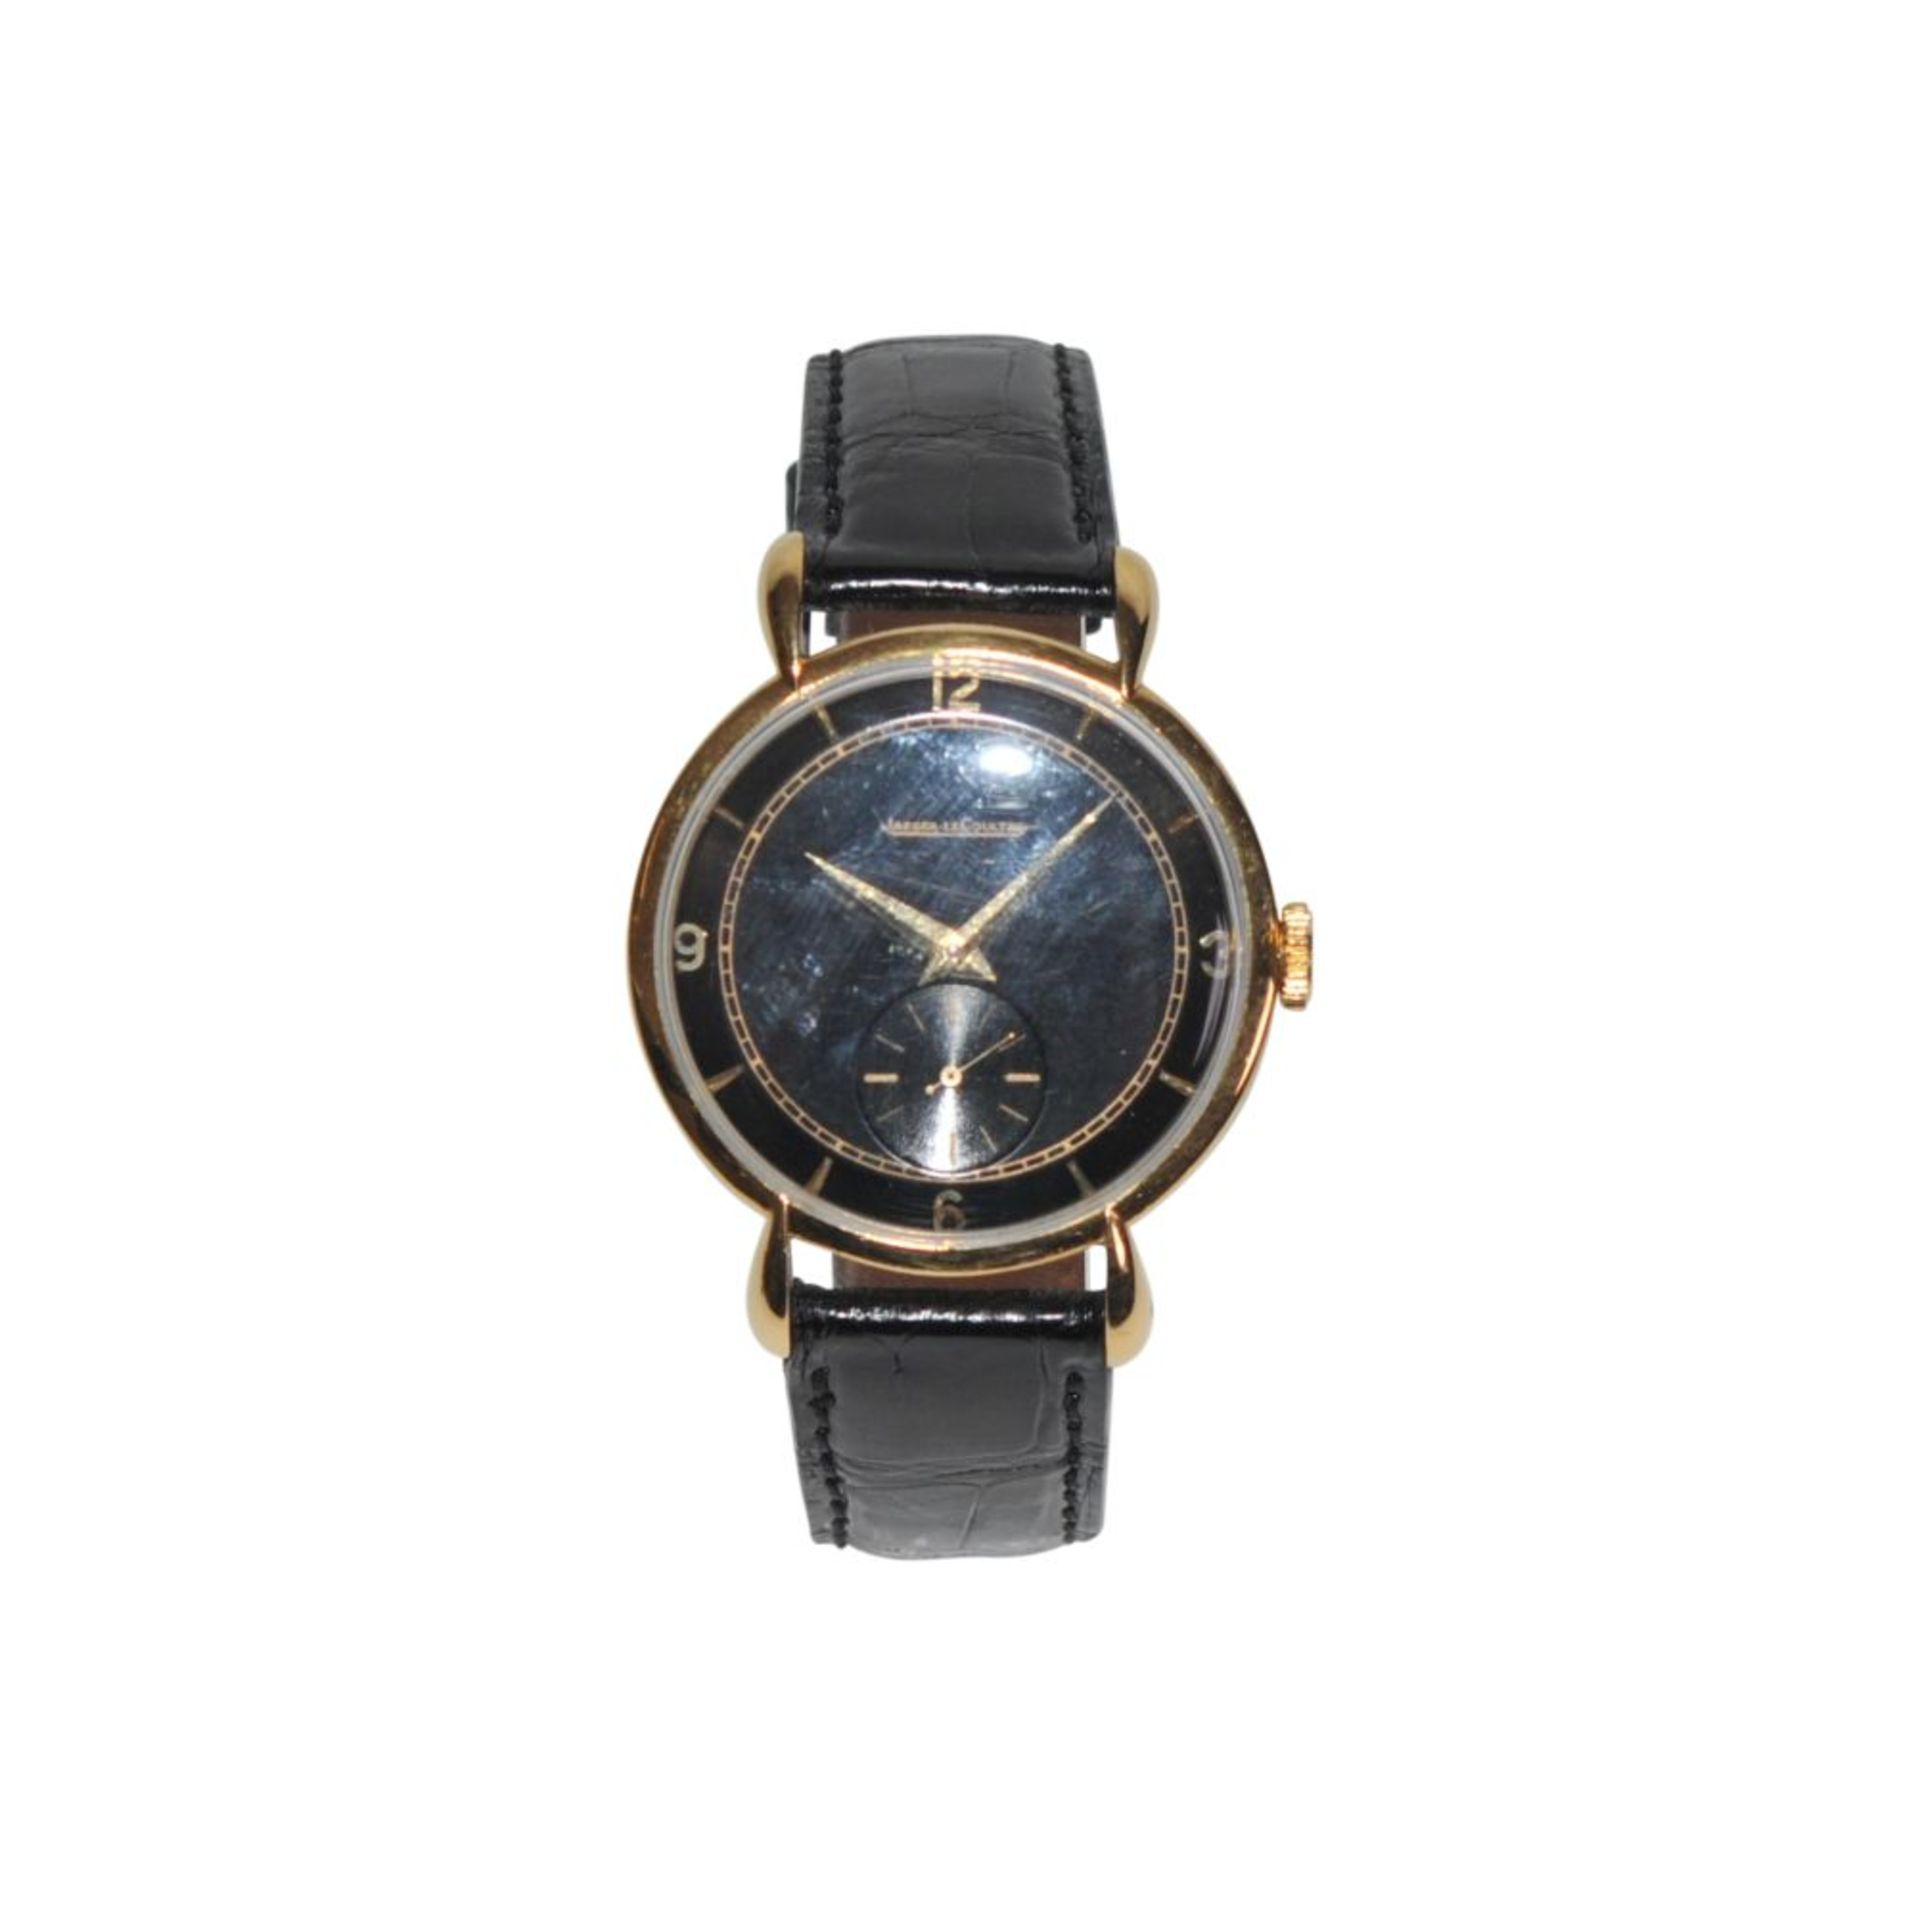 Los 7 - Jaeger le Coultre Vintagebeautiful men's watch 36 mm with black dial, manual winding with JLC